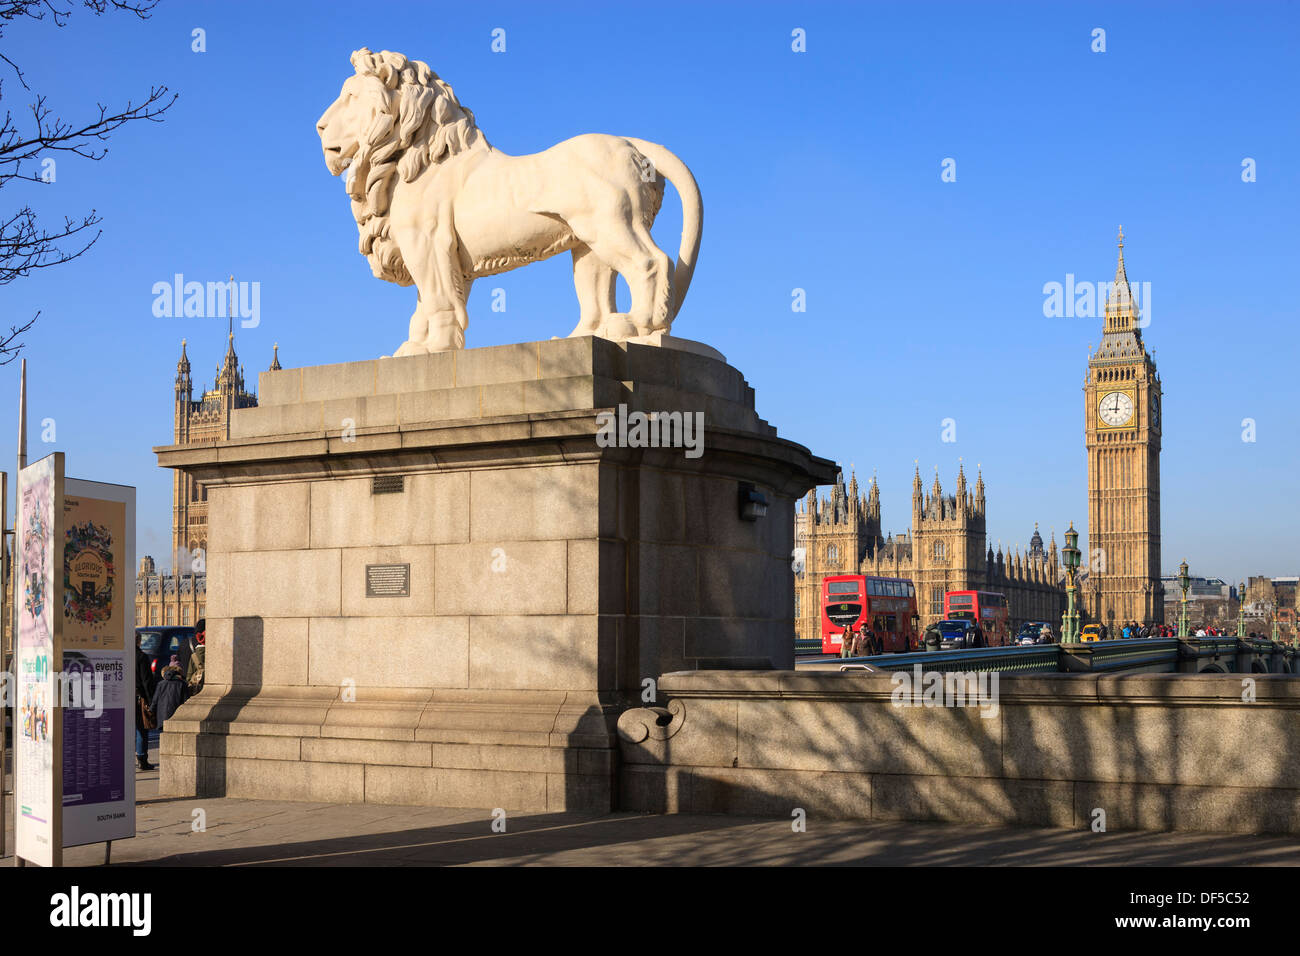 The South Bank Lion with Big Ben and Houses of Parliament Westminster London England - Stock Image